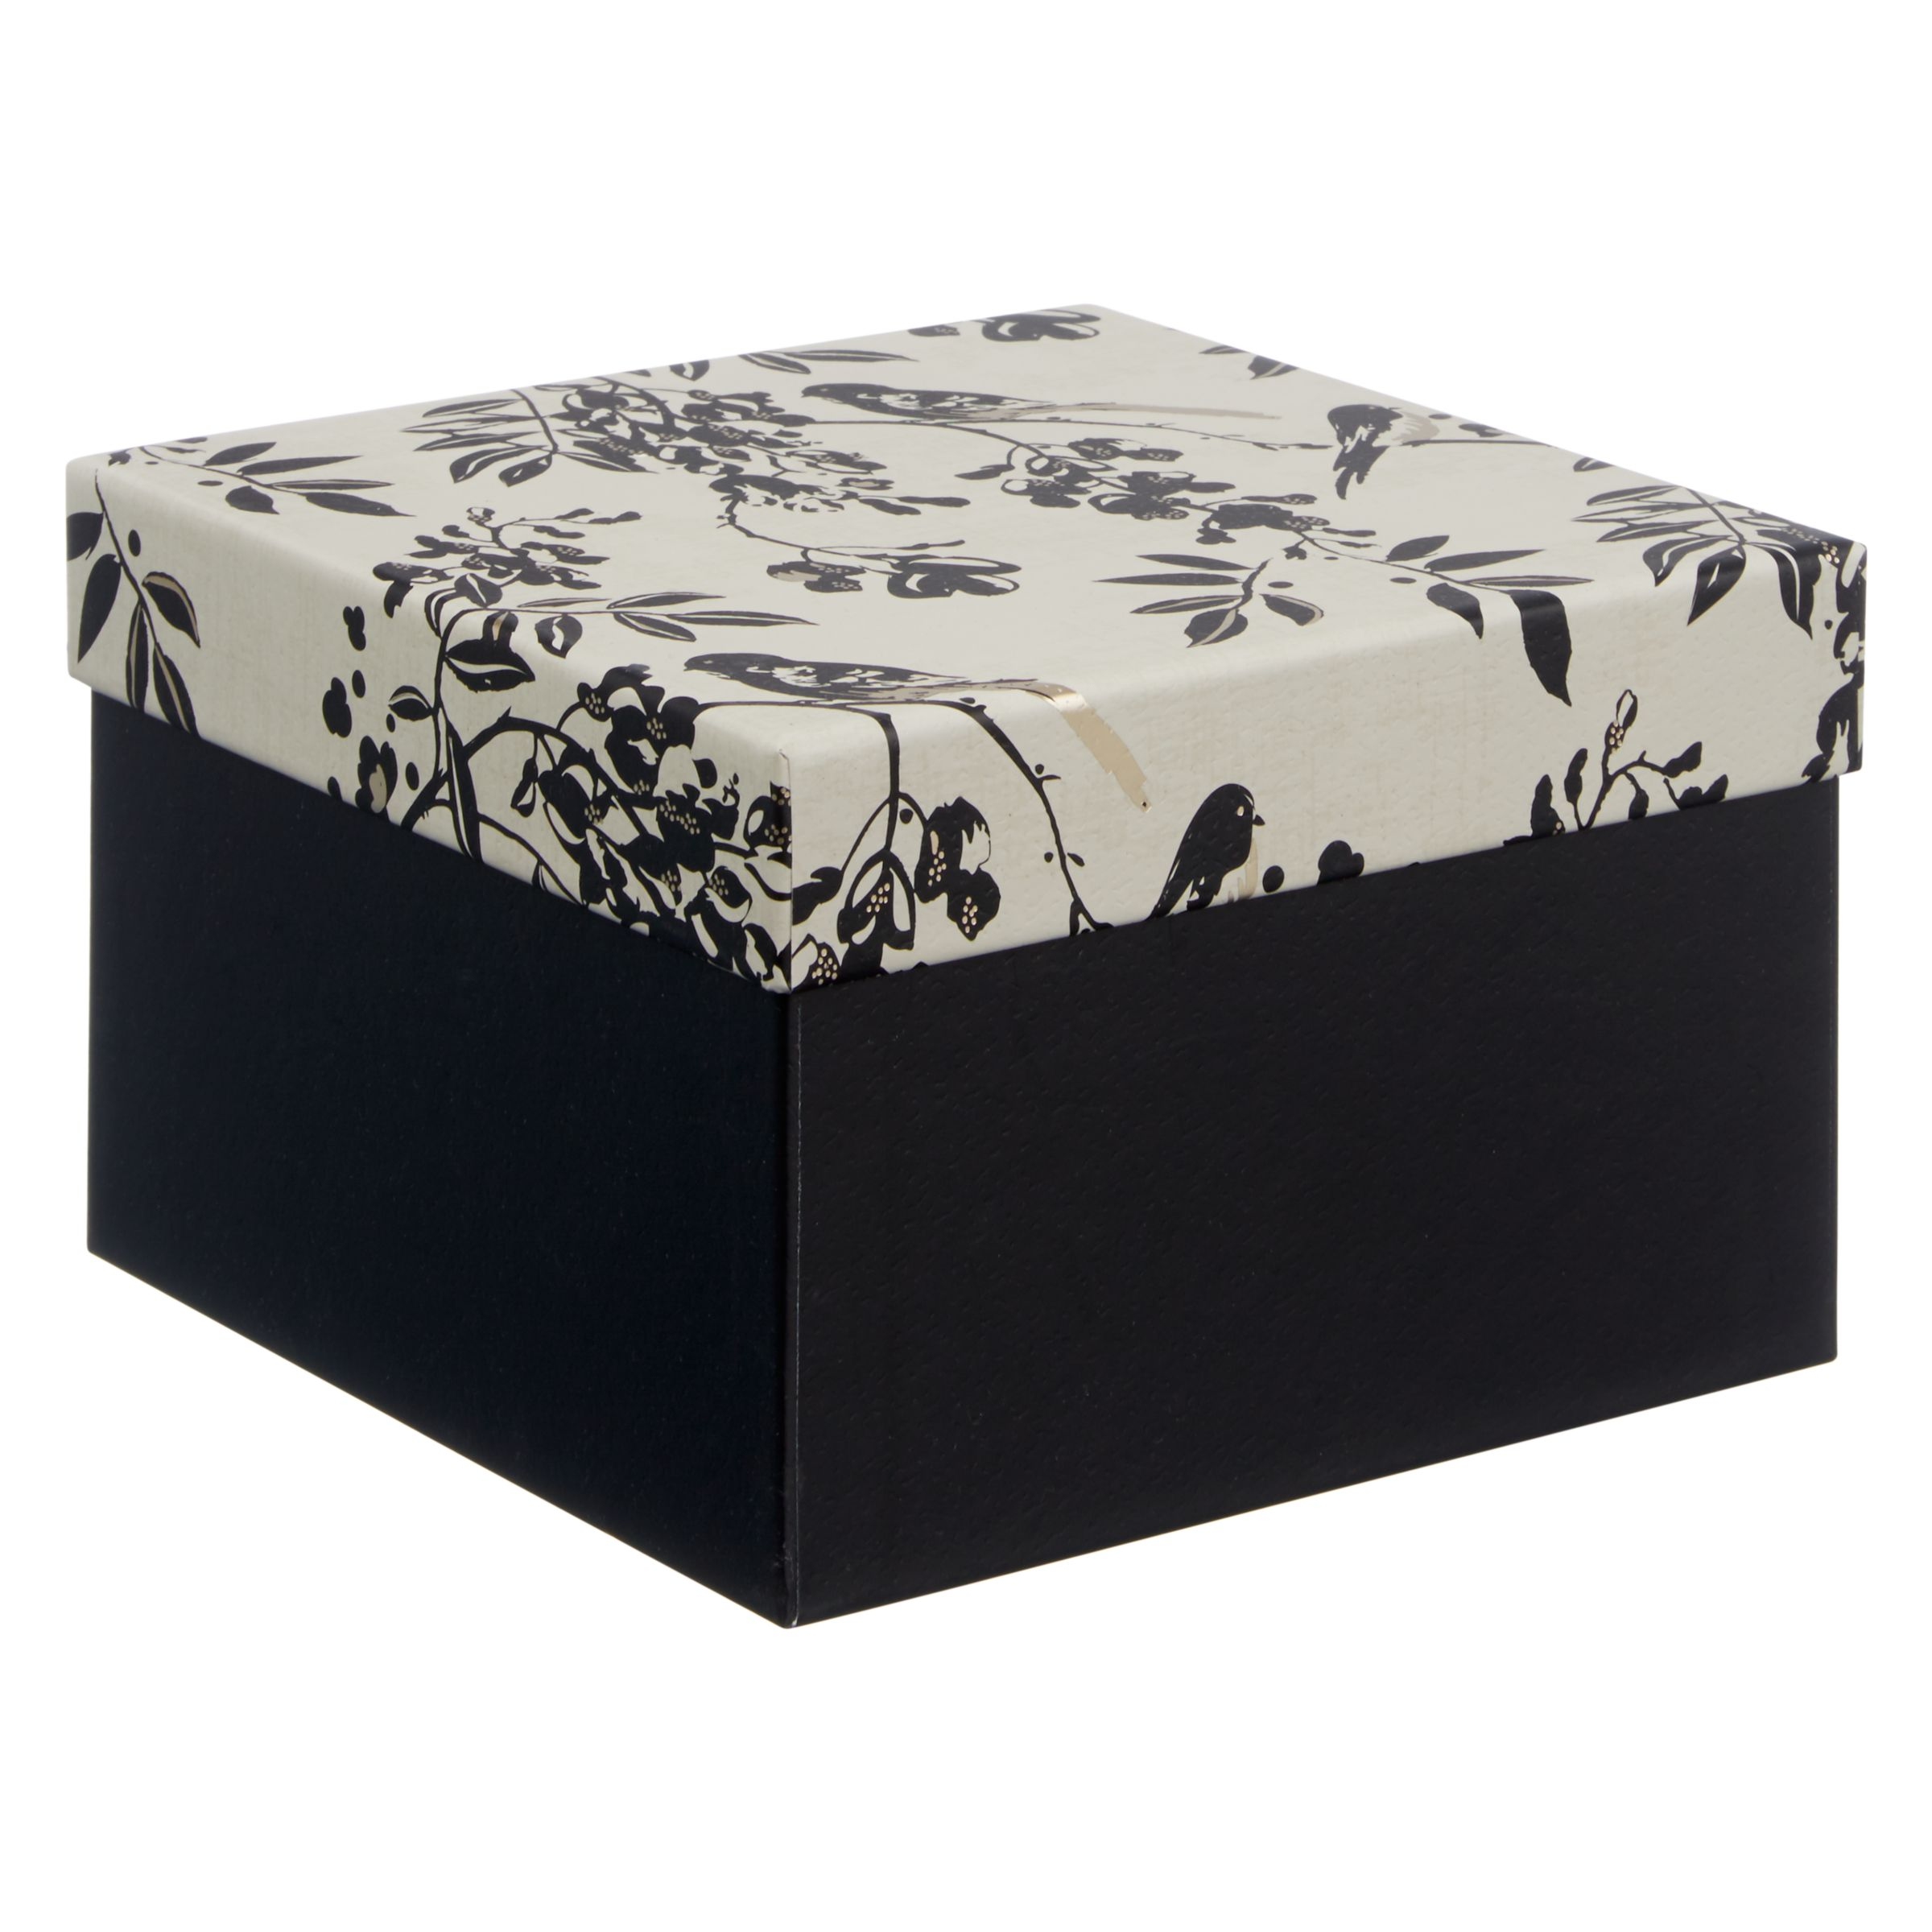 Buy Wedding Gift Box : Buy John Lewis Wedding Gift Box, Small, Black Online at johnlewis.com